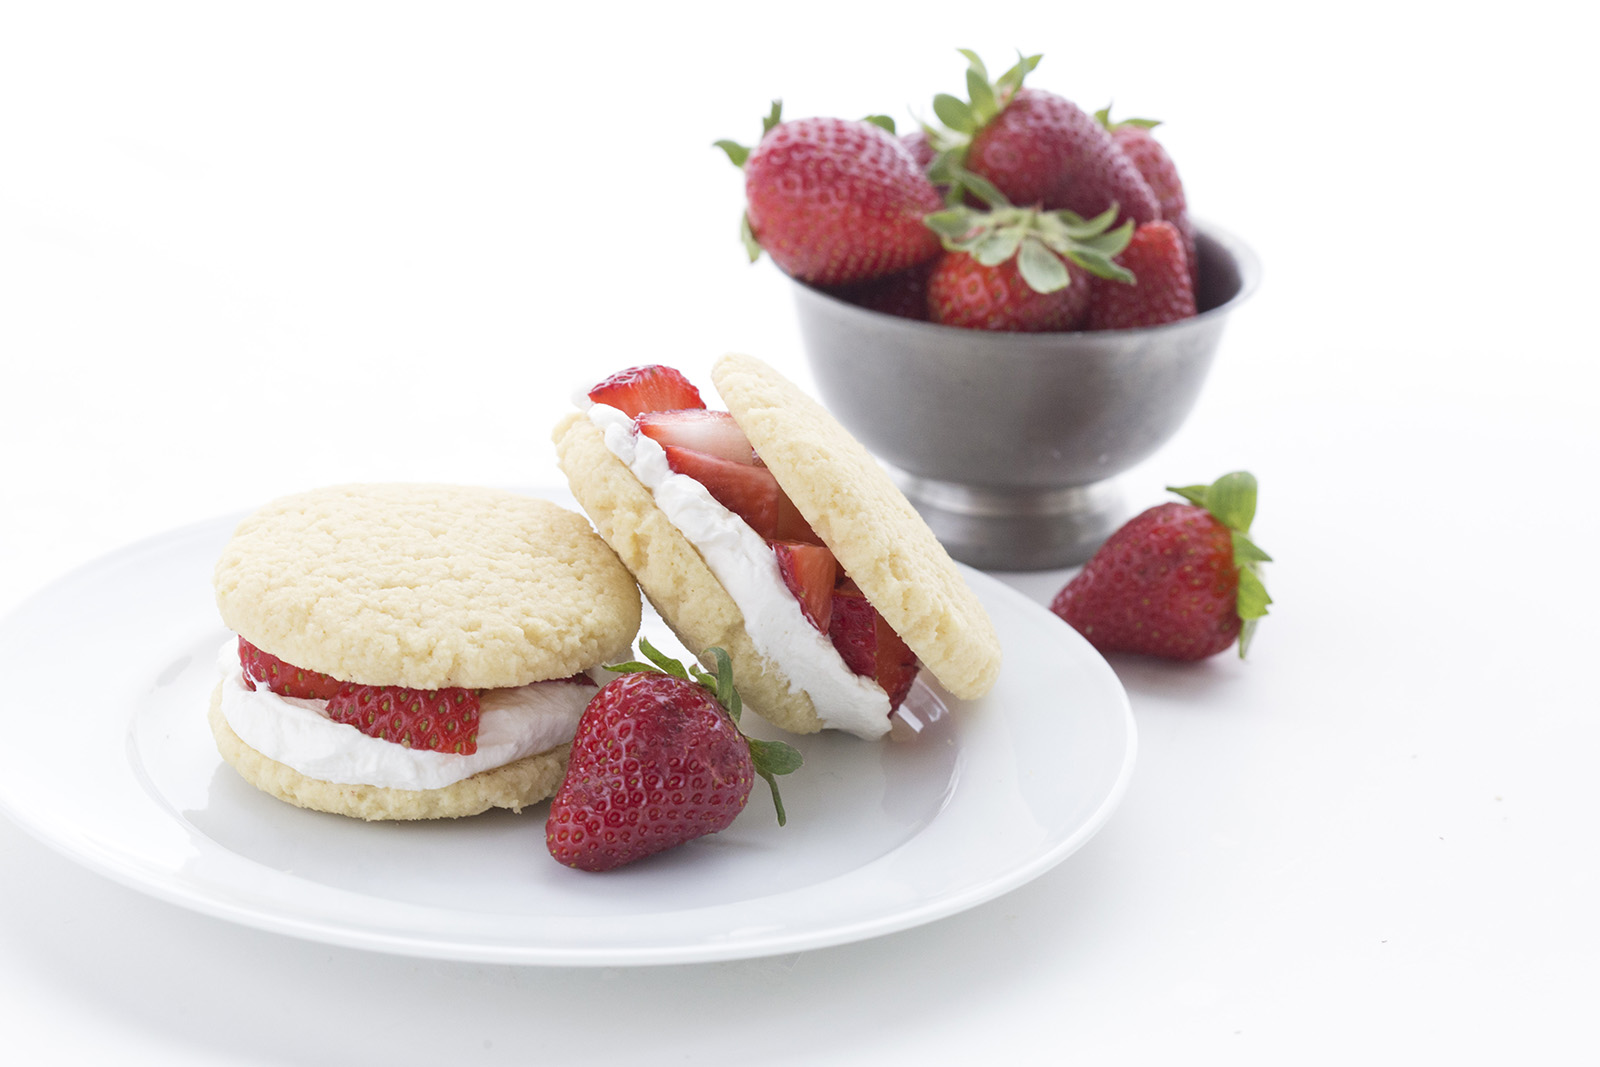 Strawberry Shortcake Whoopie Pies